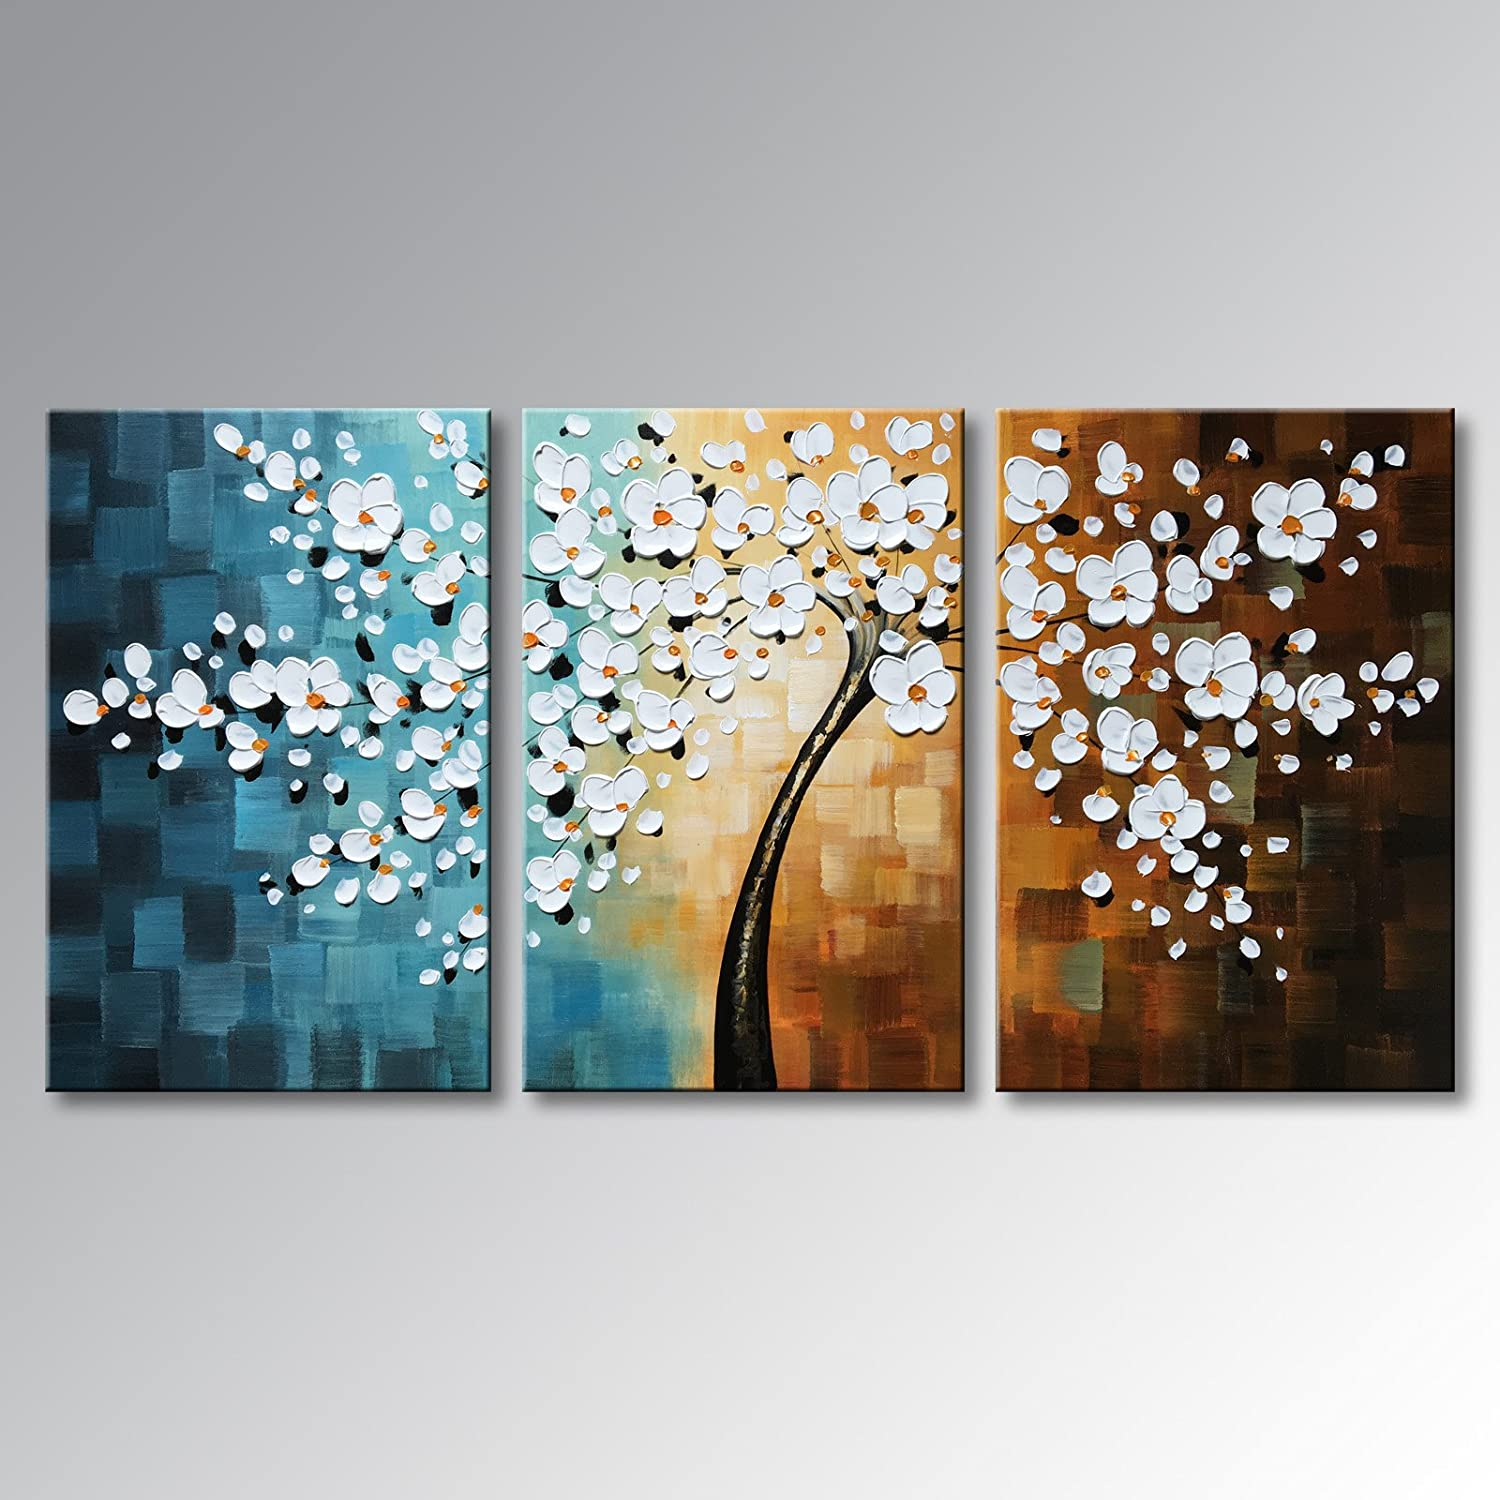 Winpeak Art Hand-painted Abstract Oil Painting Modern Plum Blossom Artwork  Floral Canvas Wall Art